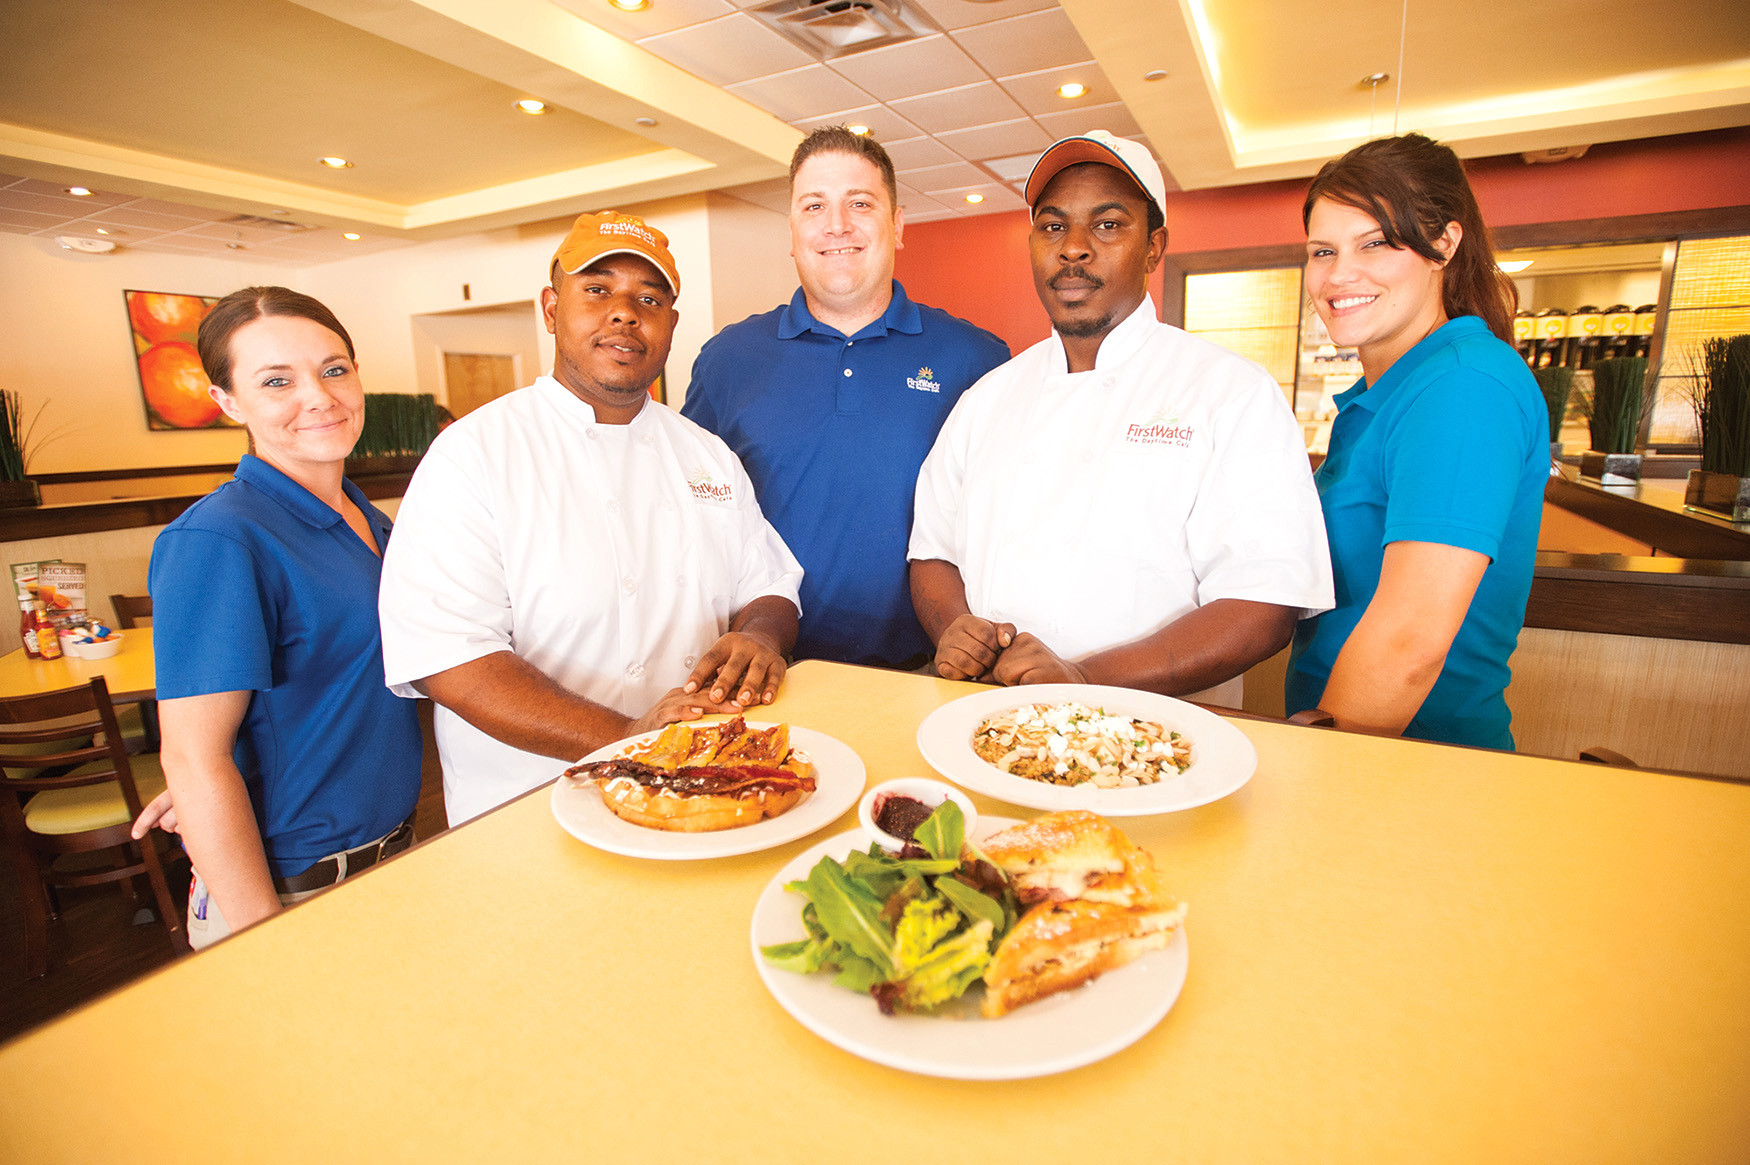 Chrystal Ransom, Chef Walter Hemphill, Manager Chris Davezac, Chef Glen Franklin and Kim Mixon of First Watch in Mandarin display the bruléed banana waffle, French toast Monte Cristo and summer cherry chicken quinoa bowl.